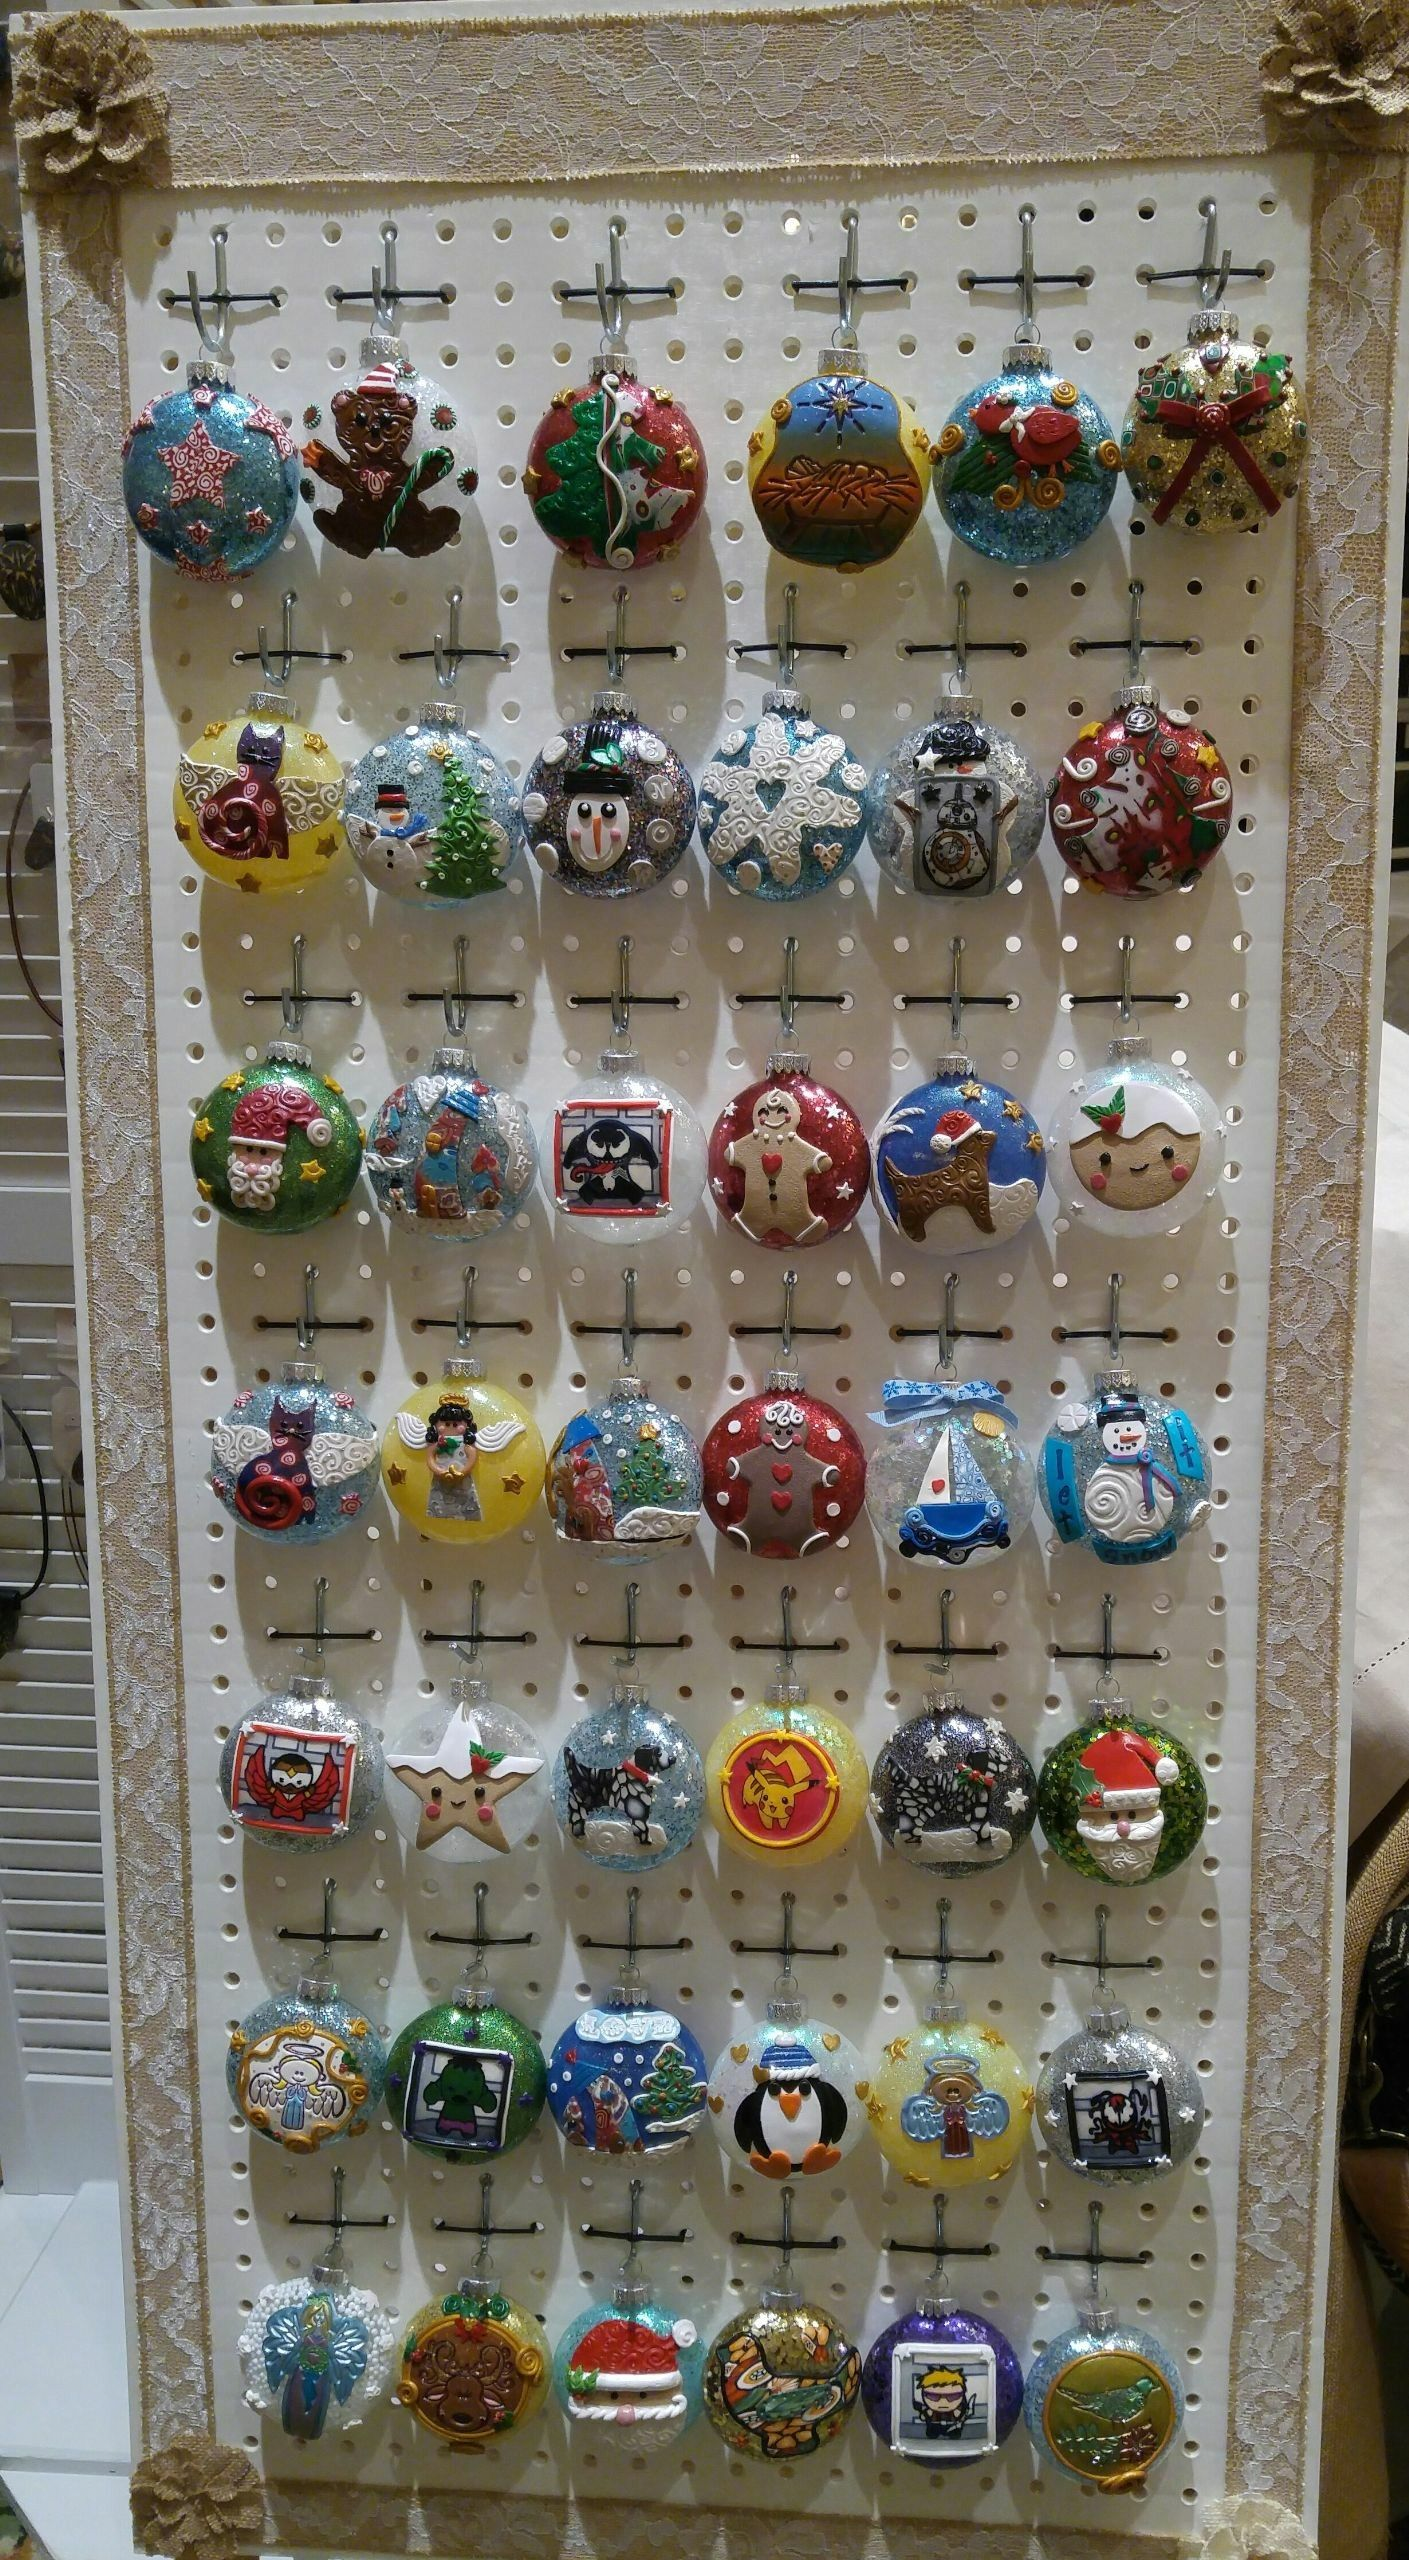 Christmas Craft Show Items.Peg Board Display For Christmas Ornaments Or Other Craft